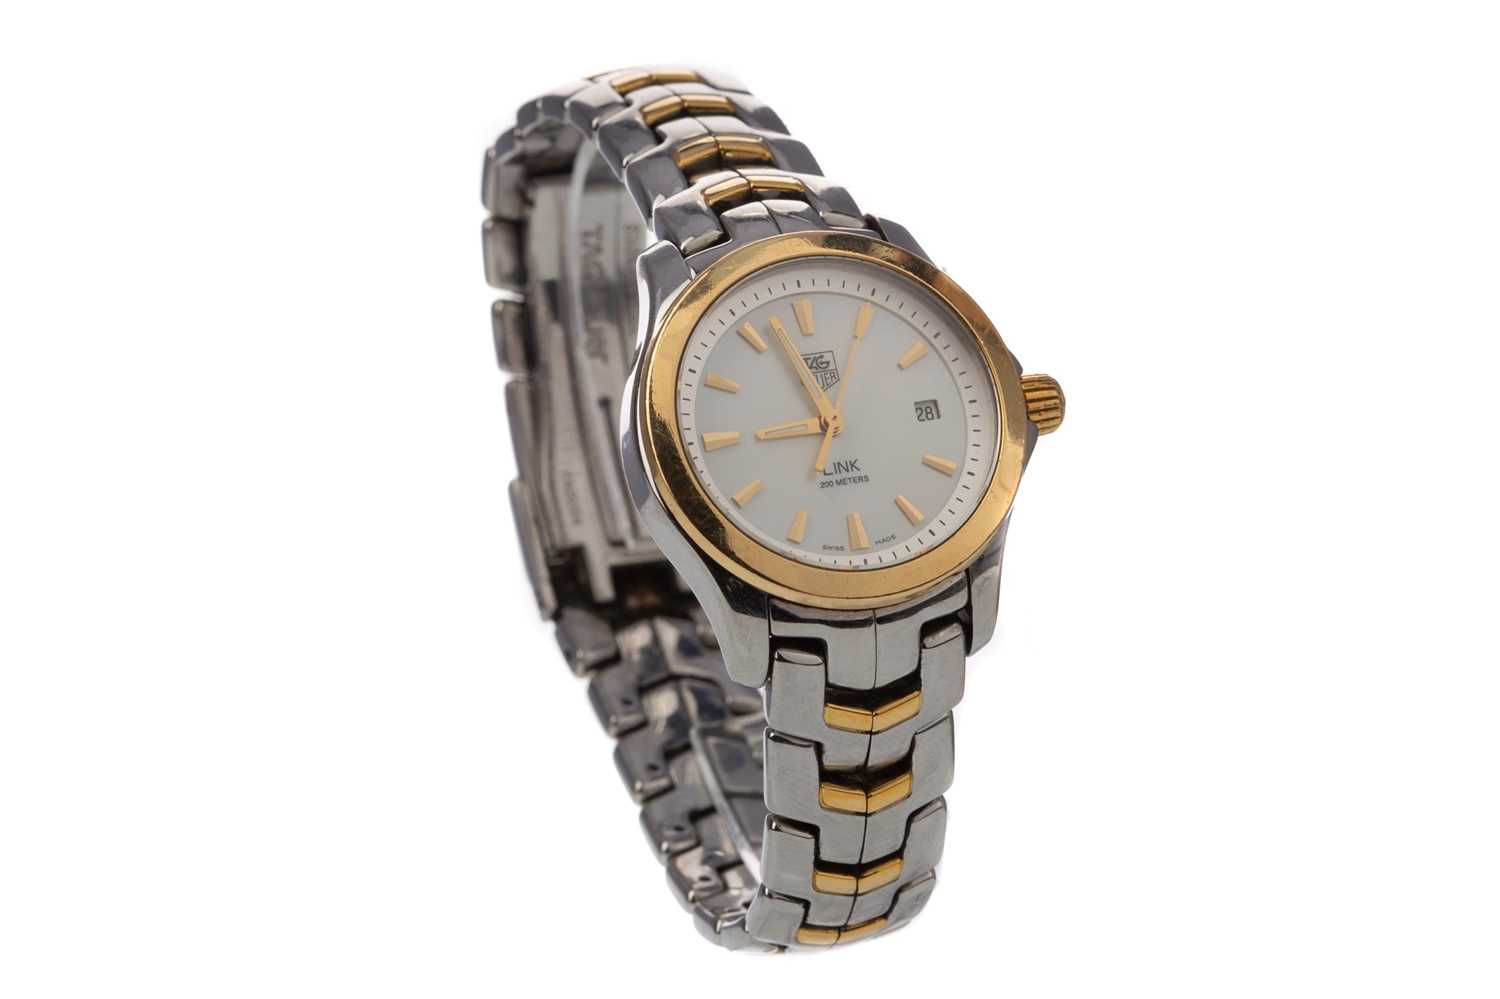 A LADY'S TAG HEUER LINK STAINLESS STEEL QUARTZ WRIST WATCH